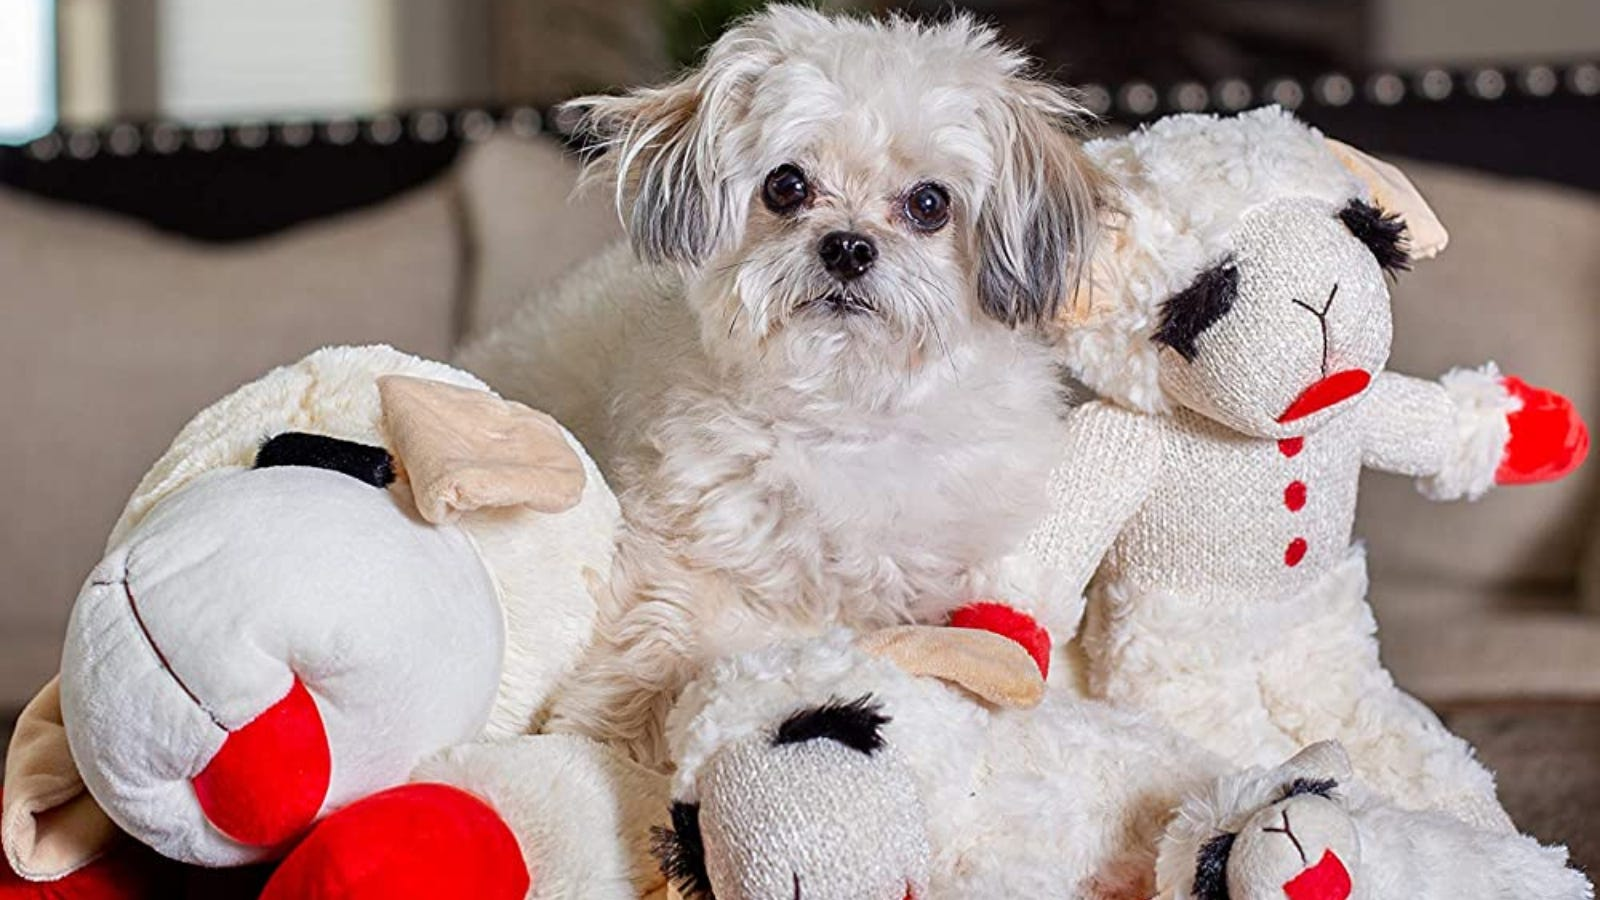 a small dog surrounded by lamb plush toys